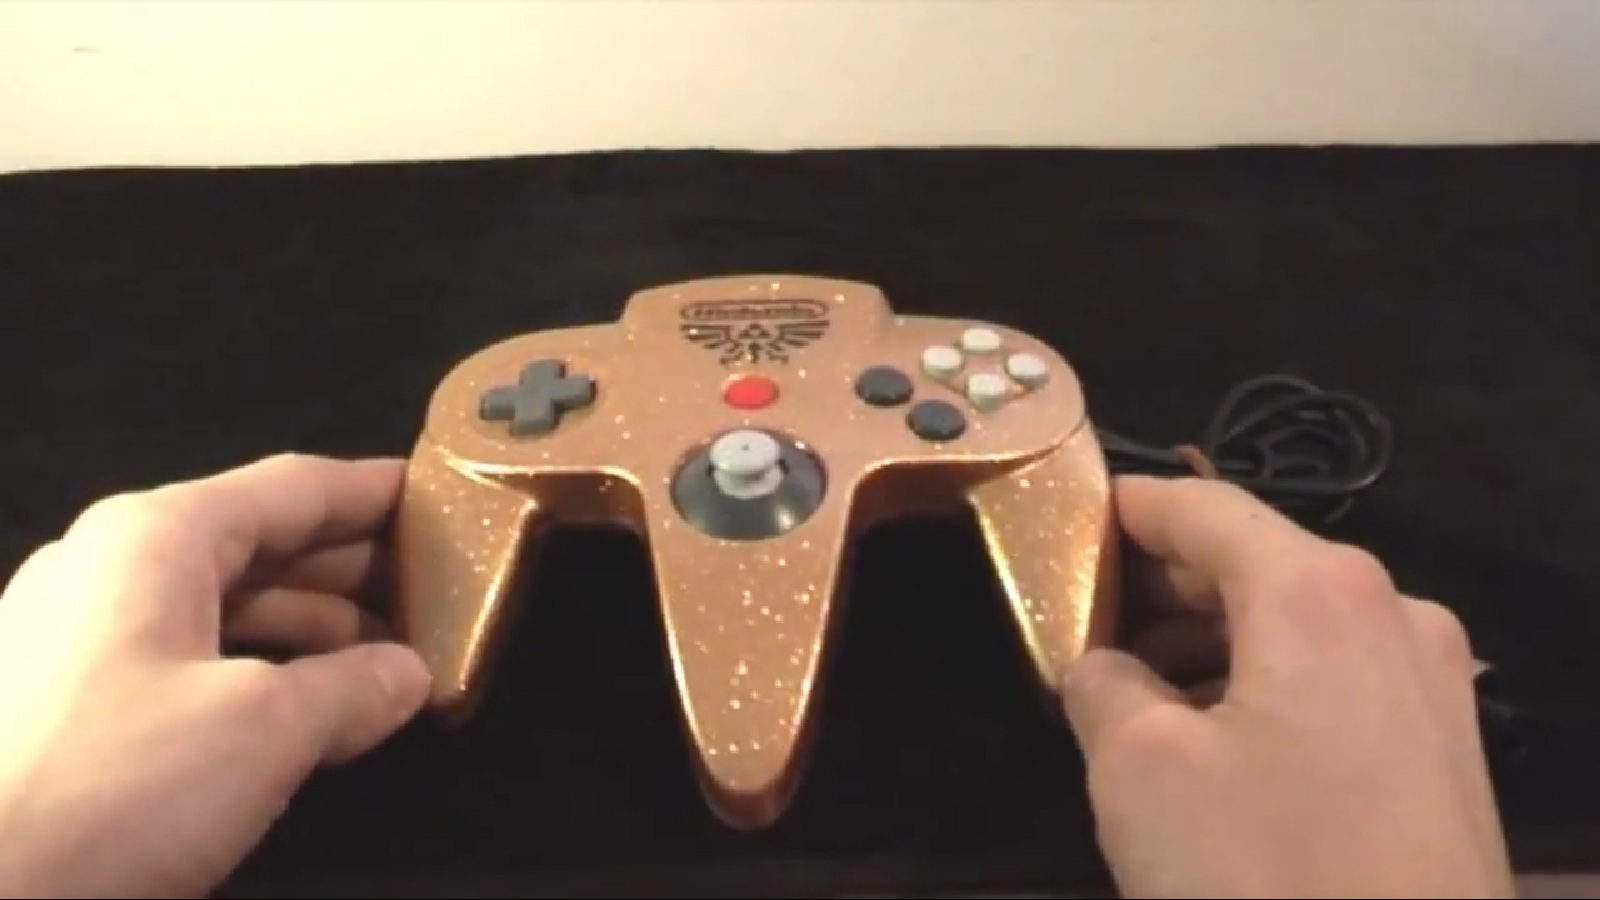 Custom Zelda Themed Nintendo 64 Controller - Zelda Dungeon